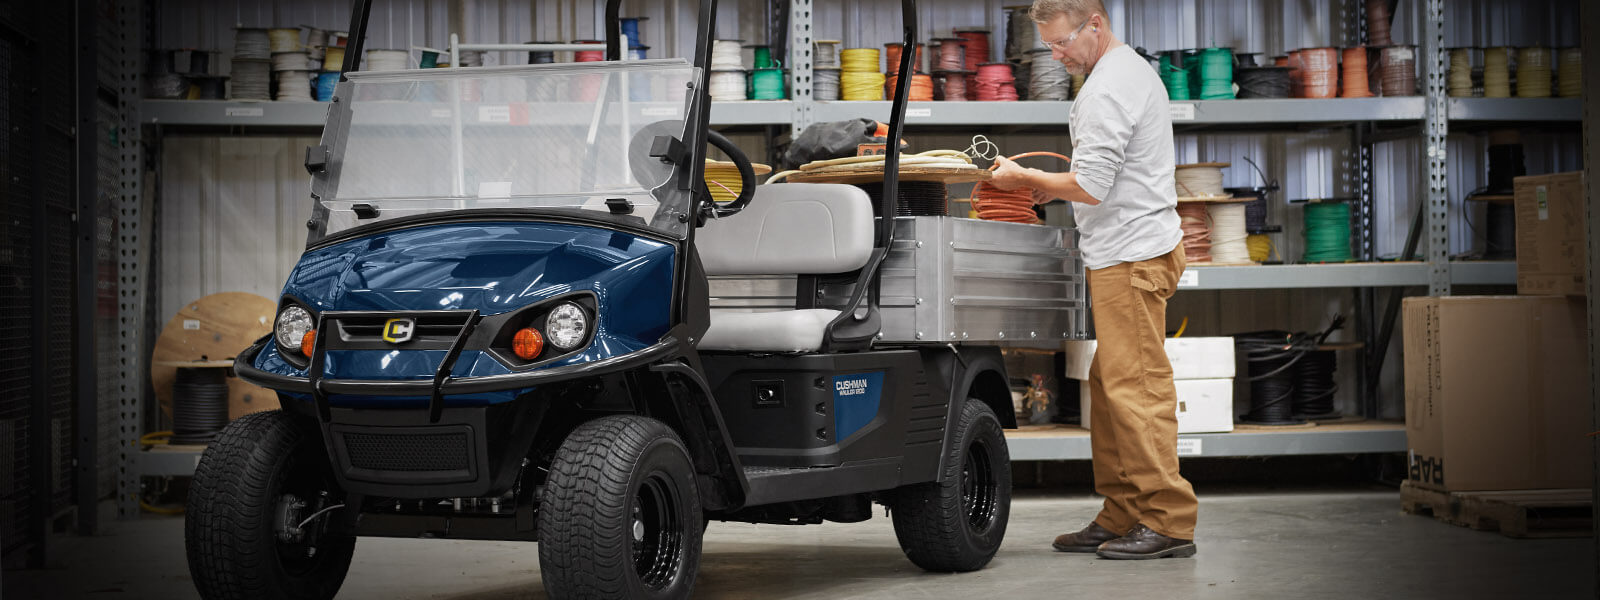 Cushman Hauler Pro in blue at workshop